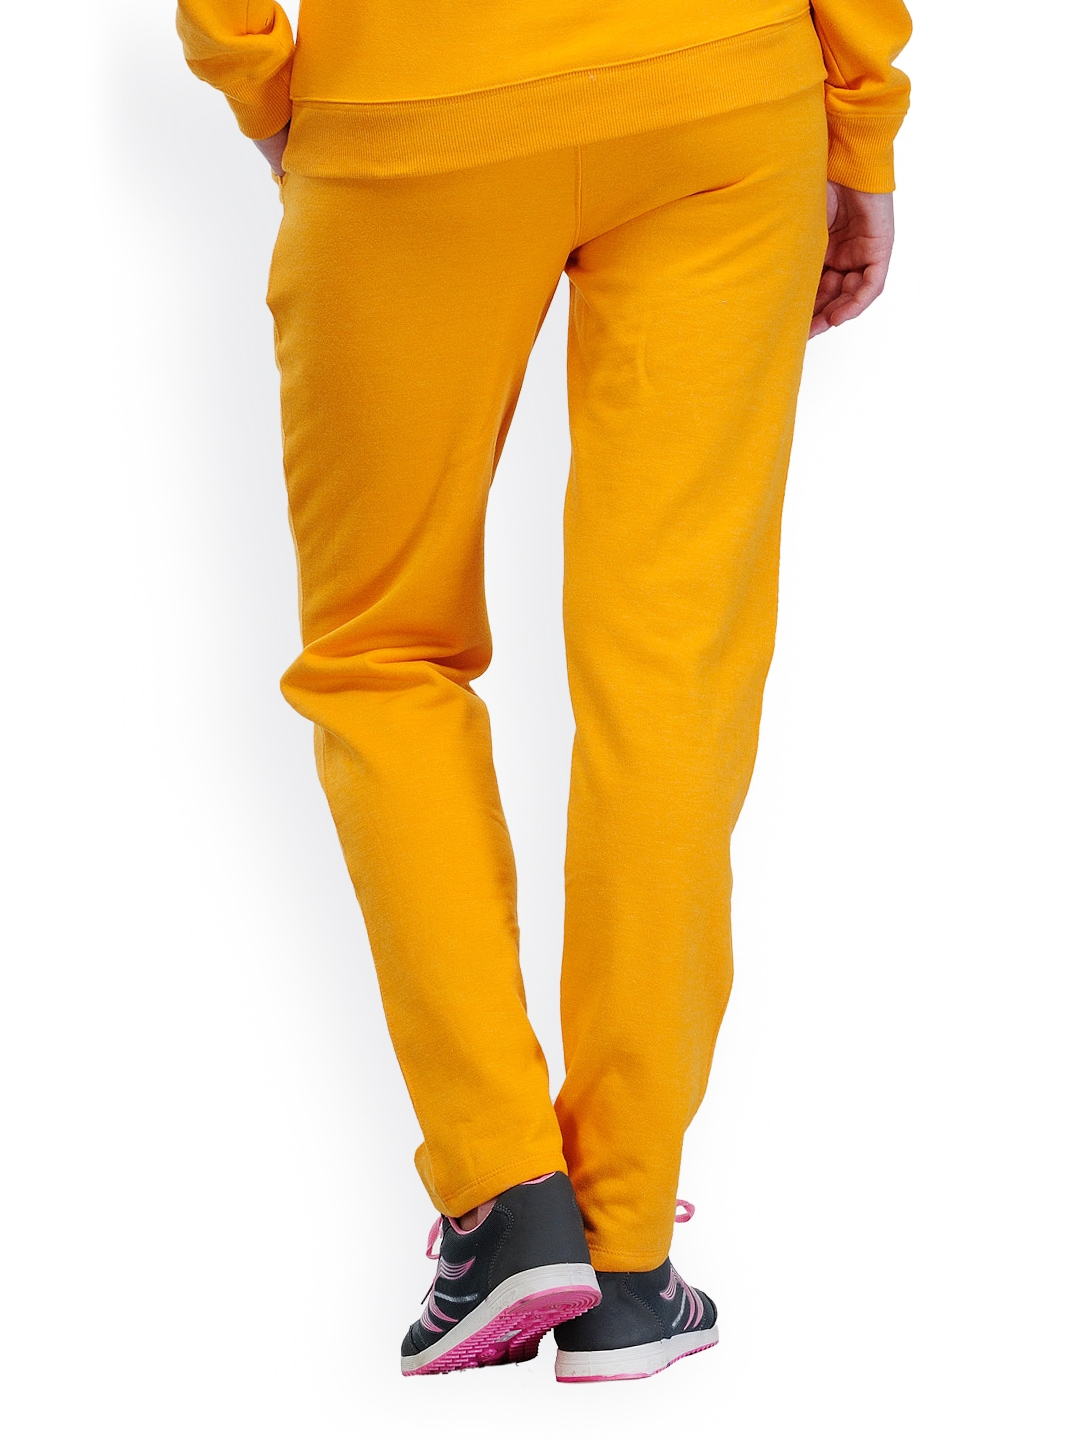 Simple  Piana Women39s Mustard Yellow Cotton 39Dafne Caracas39 Straight